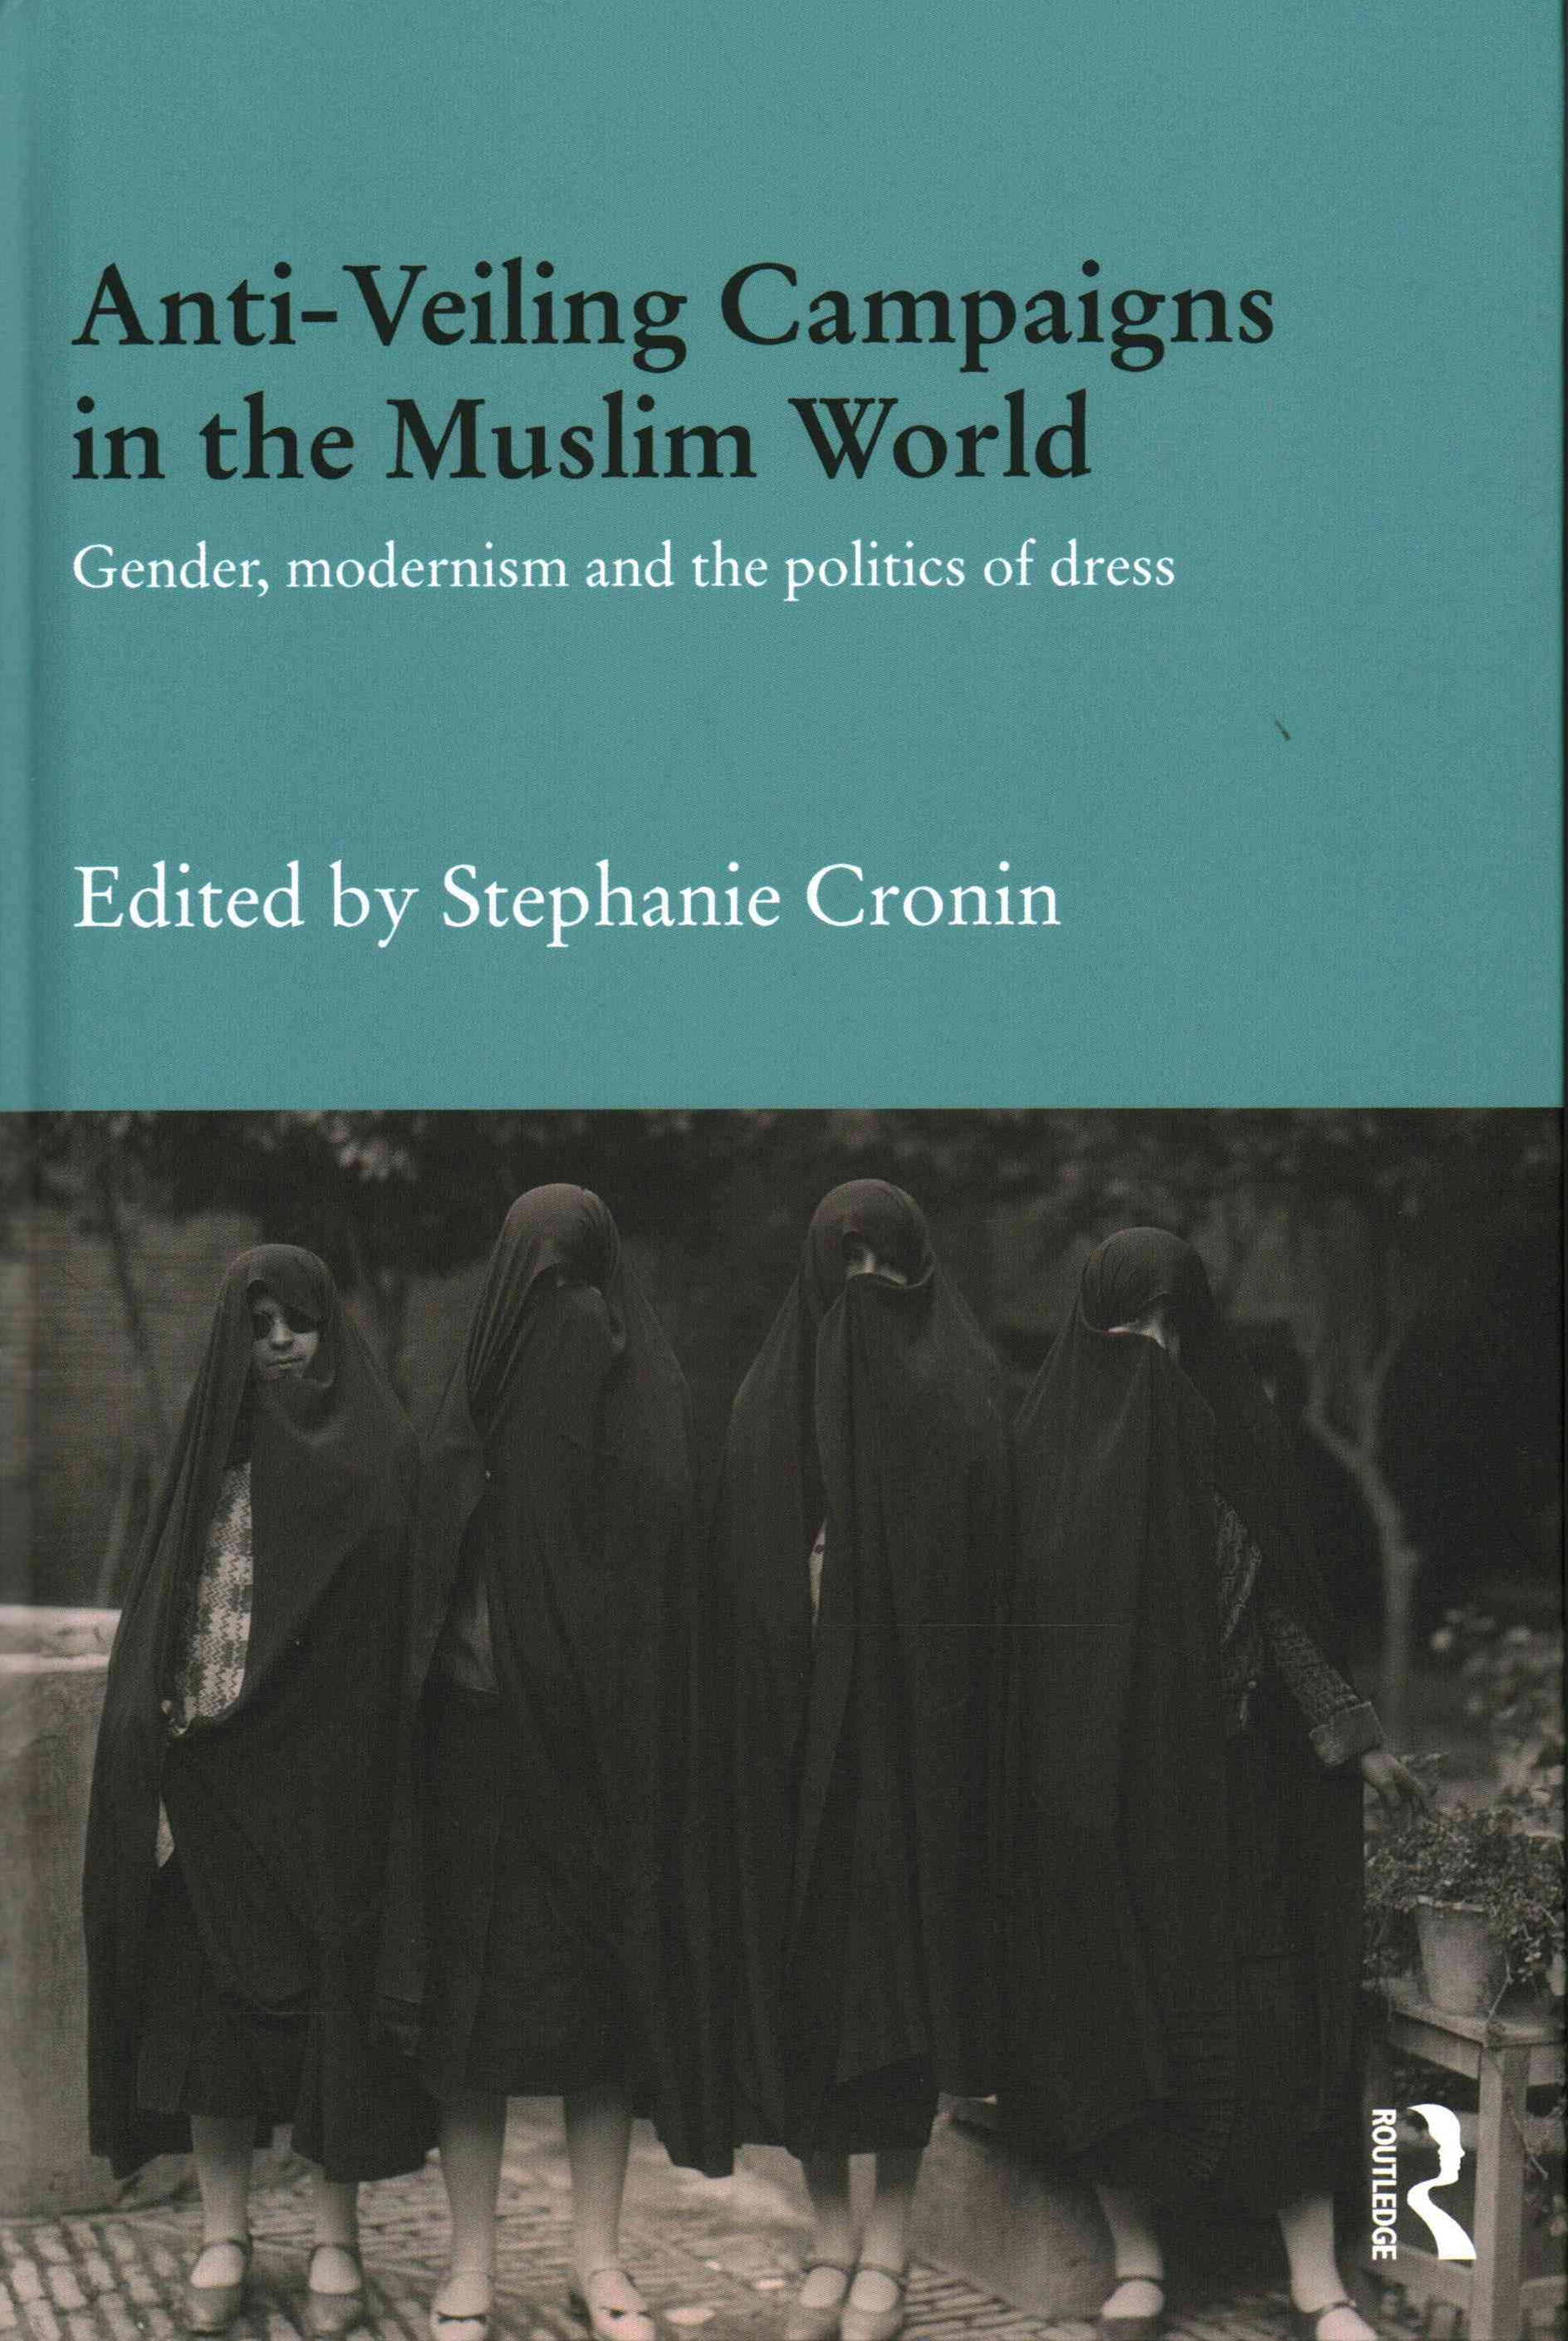 Anti-Veiling Campaigns in the Muslim World